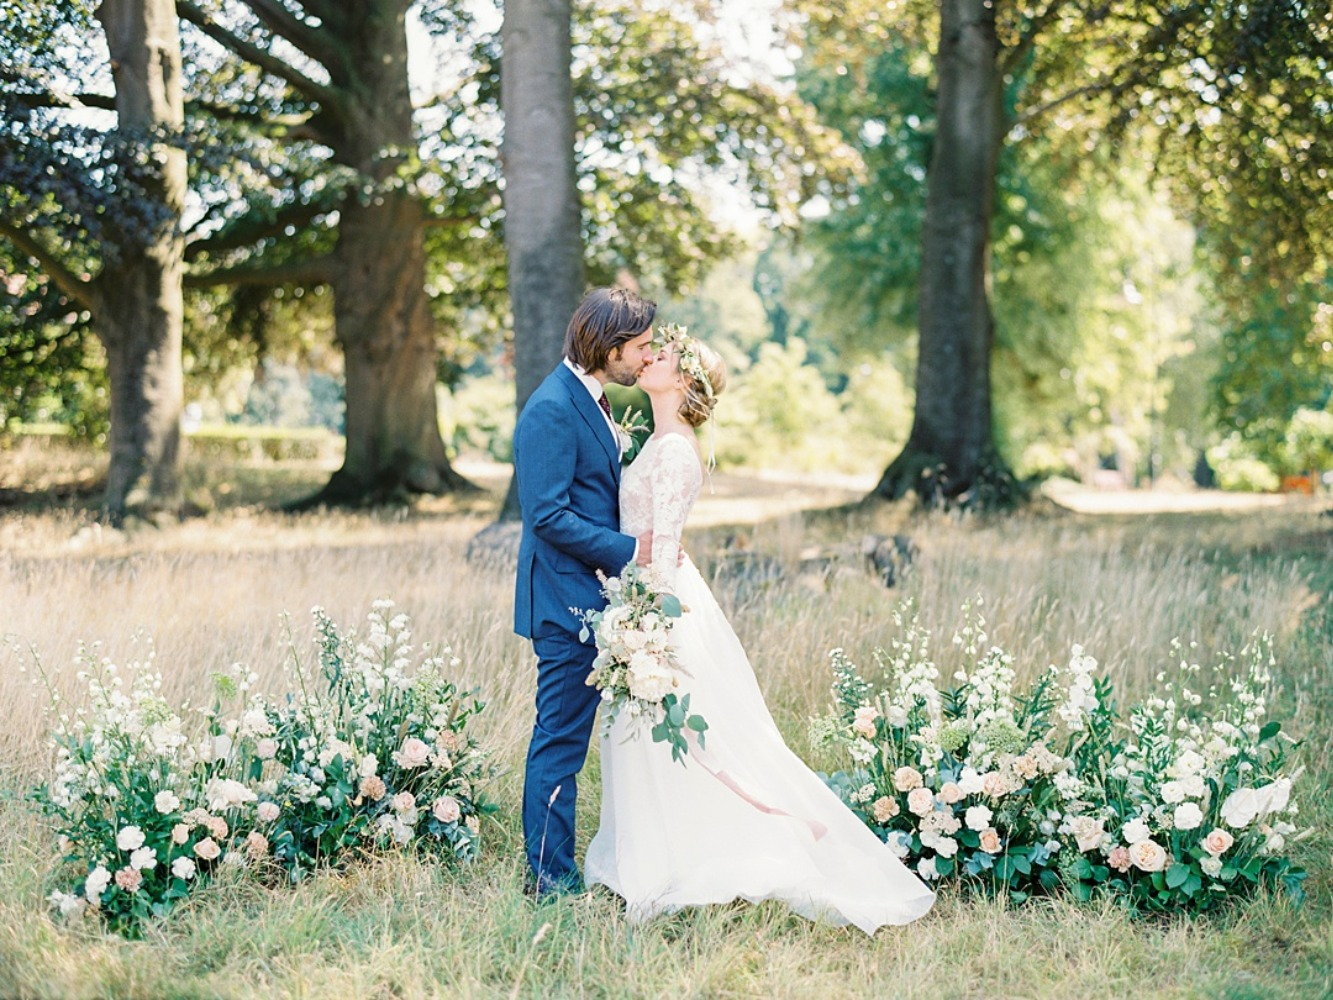 Chic outdoor Disney inspired wedding